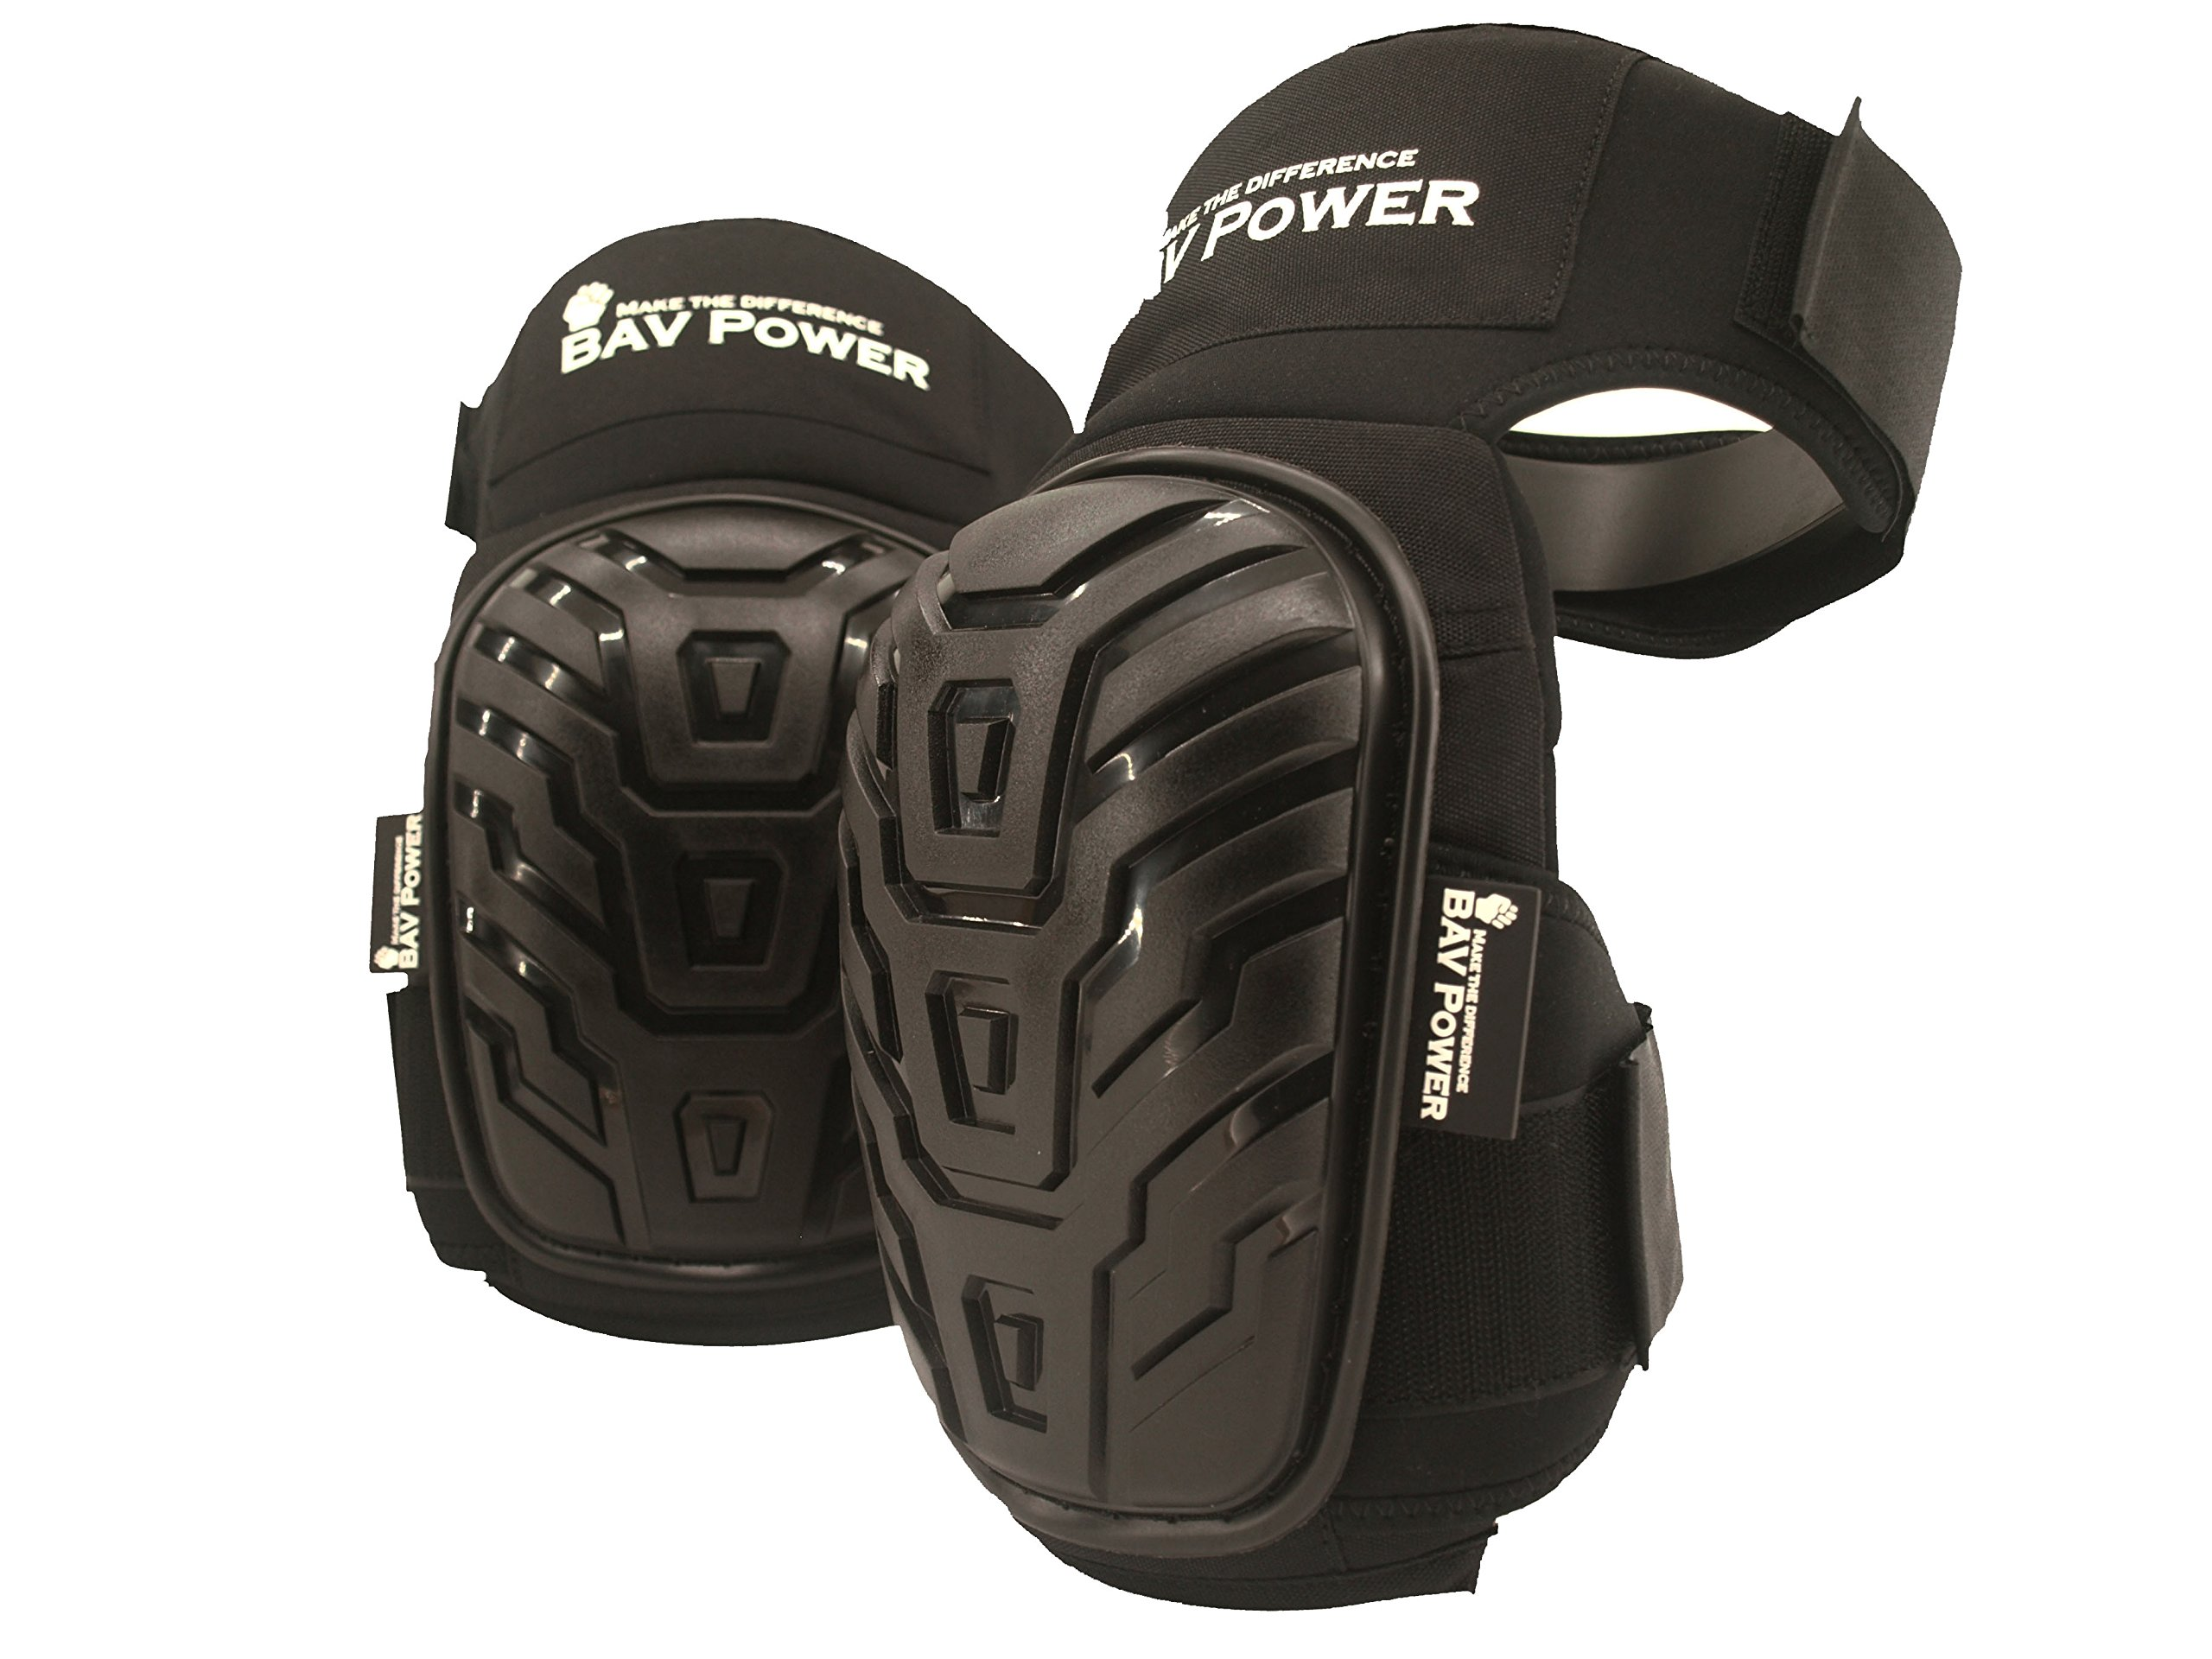 BAV Power Professional Durable Working Knee Pads-Black with Heavy Duty Foam Padding and Comfortable Gel Cushion, Strong Double Straps Adjustable